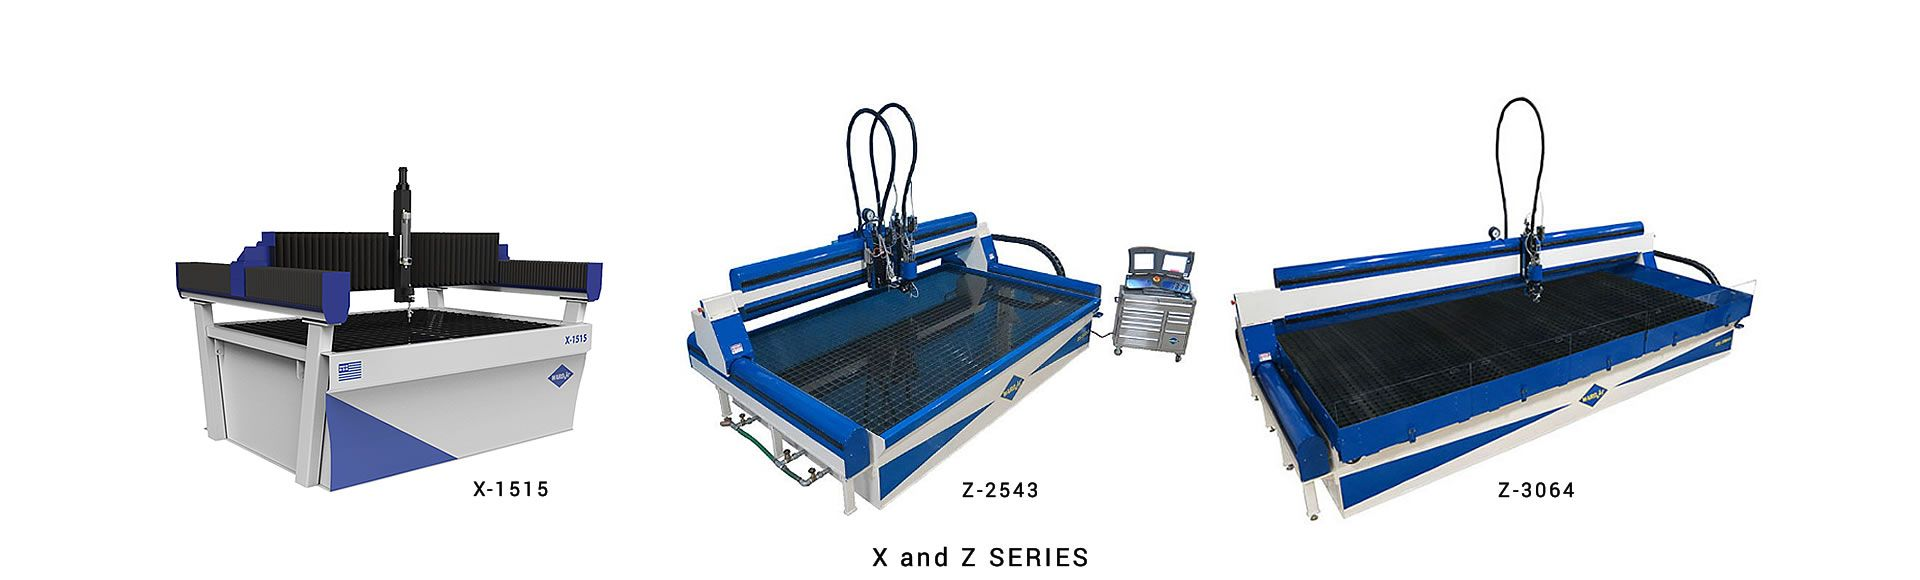 X and Z SERIES